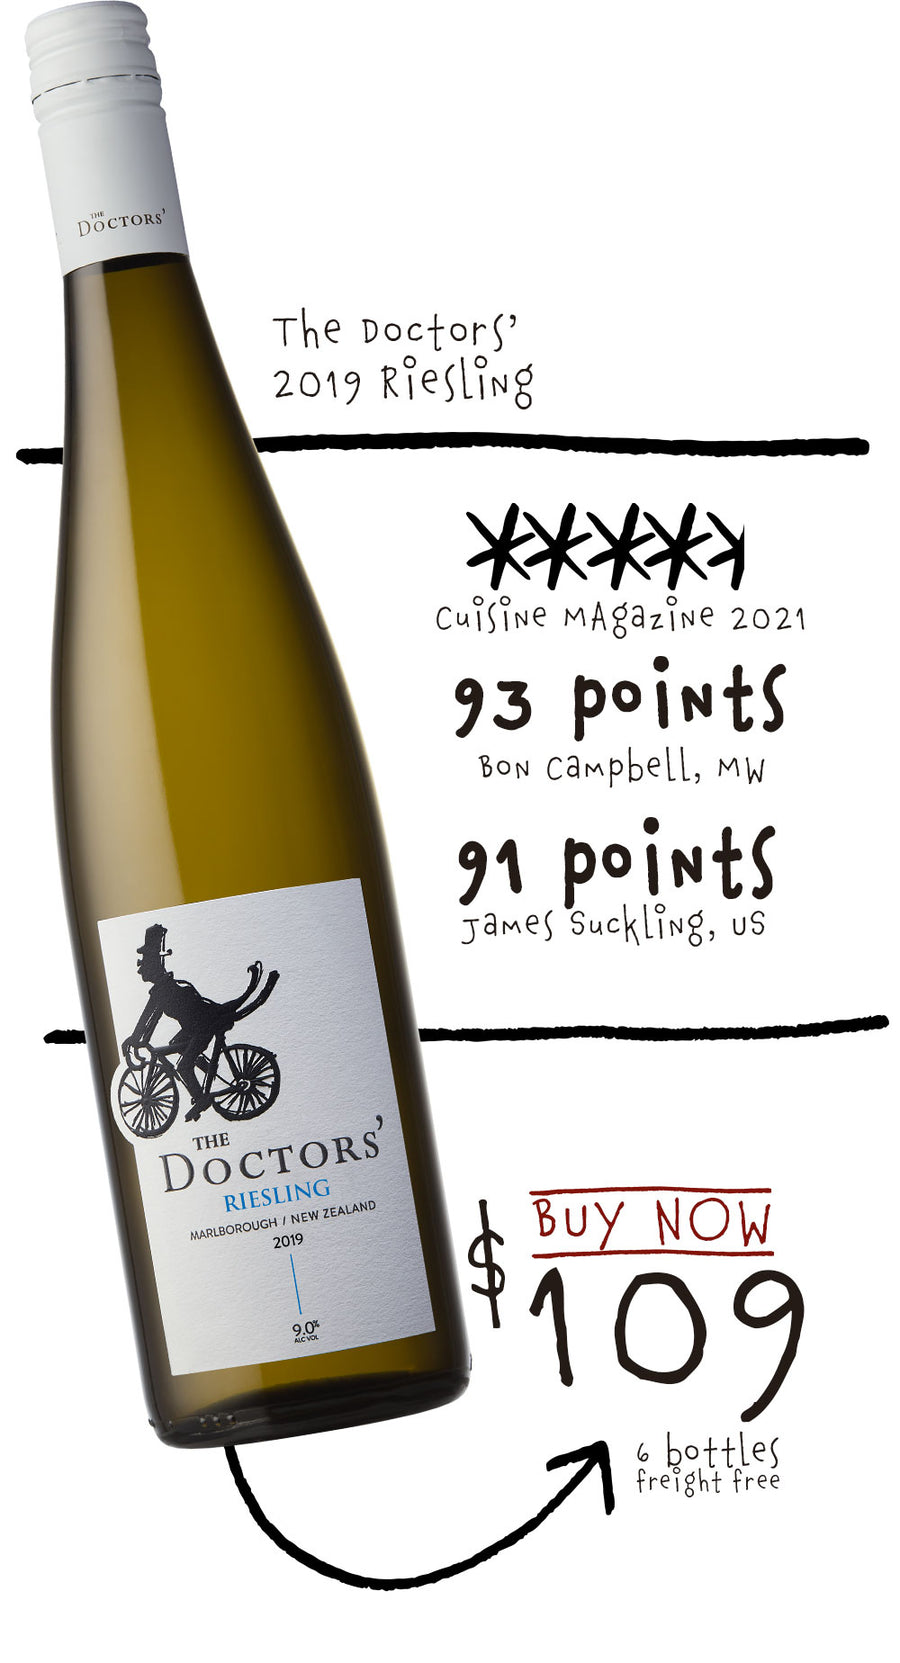 2019 The Doctors' Riesling Special